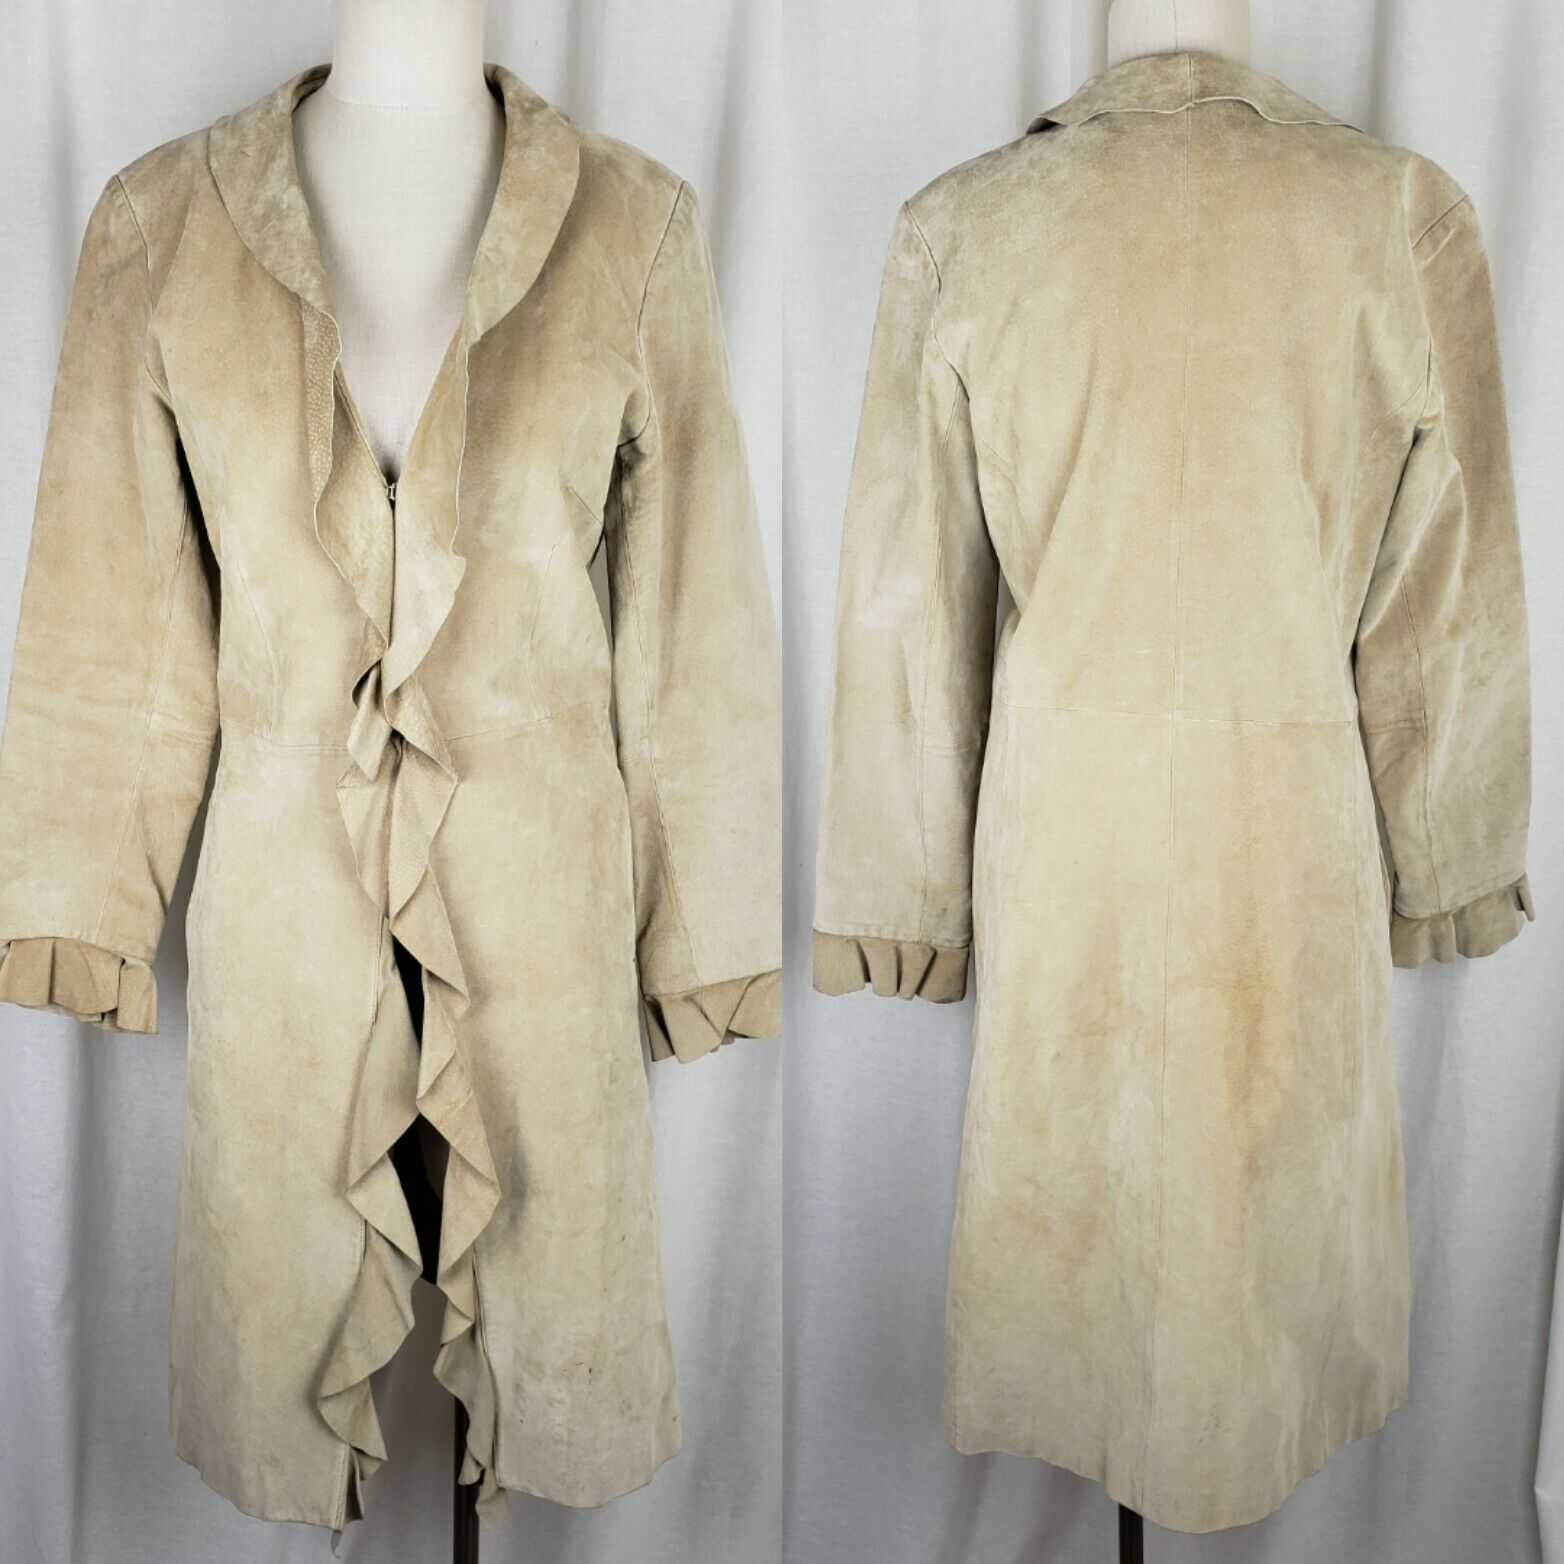 Boston Proper Brushed Leather Ruffled Maxi Duster Long Trench Coat Womens 8 Tan